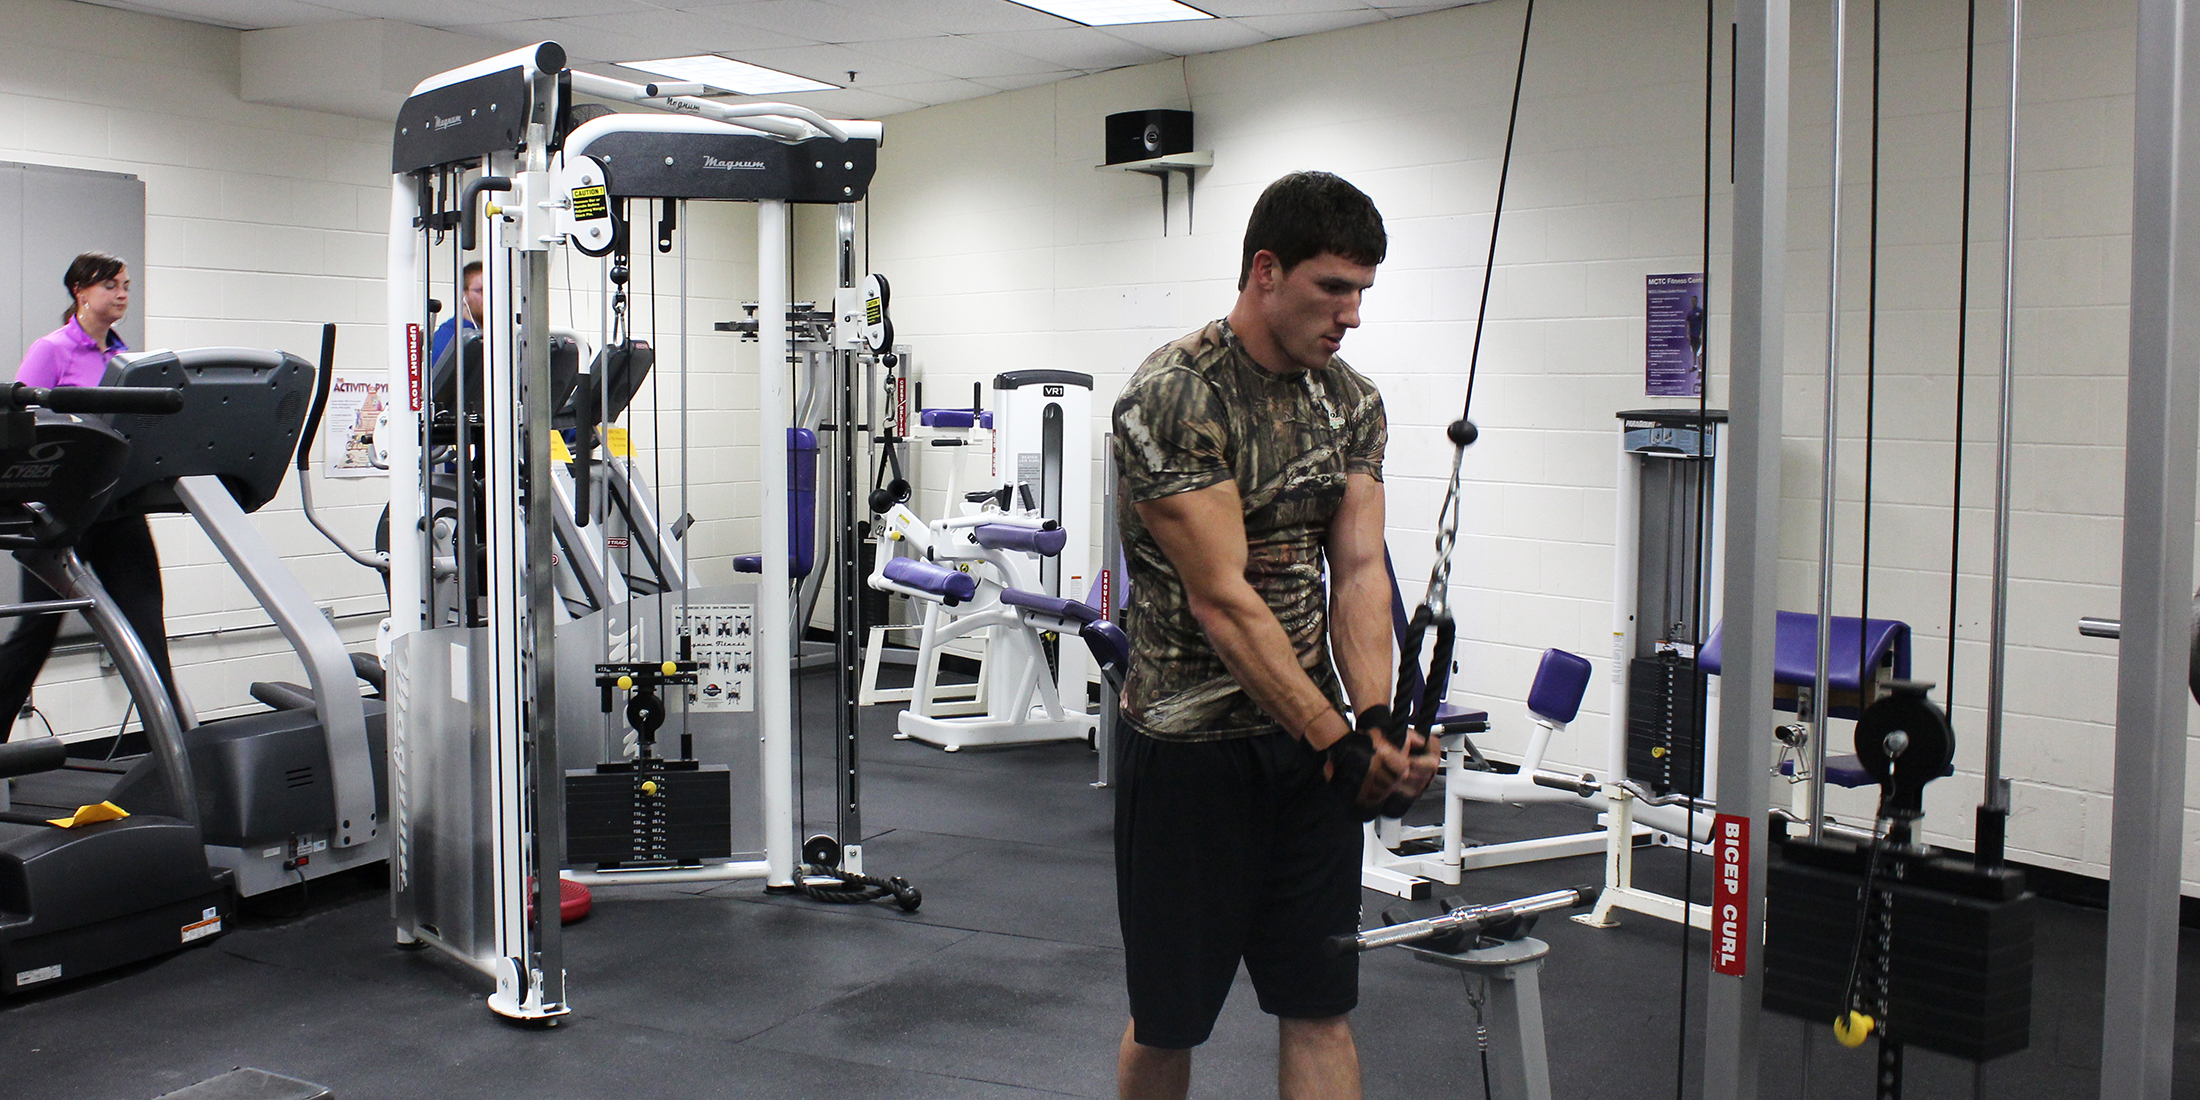 The weight room in the Fitness Center has a variety of machines. (Photo: Kassidy Curry/City College News)